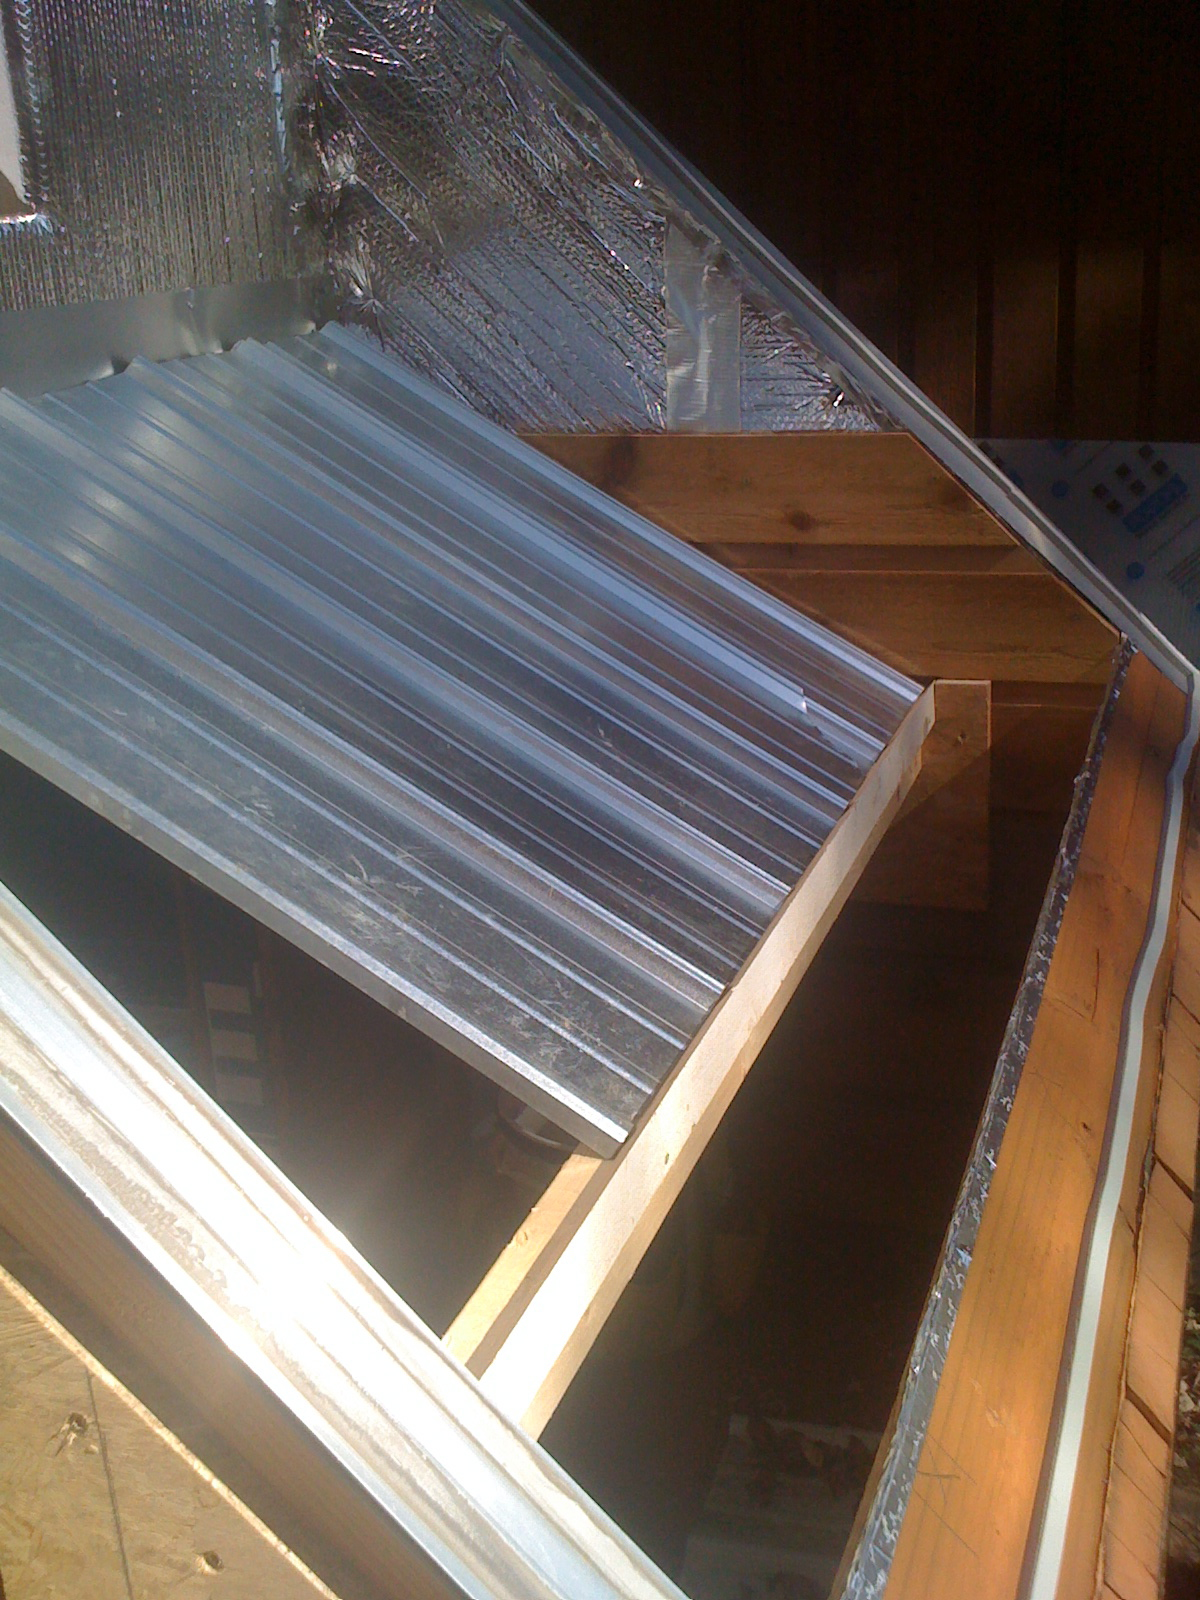 Picture of Building the Solar Collector